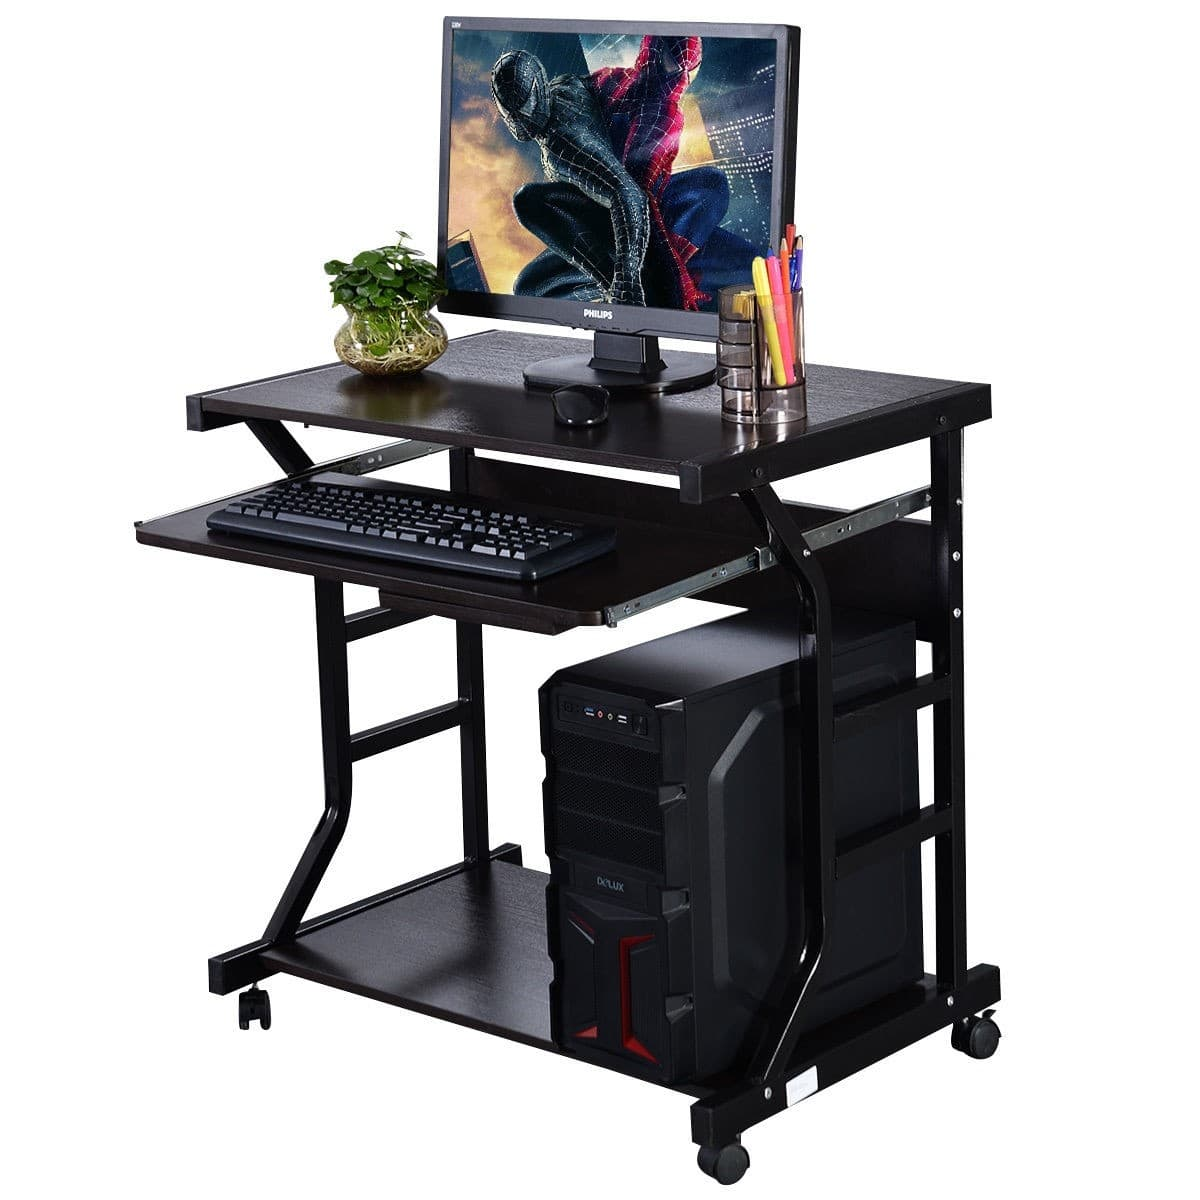 Costway Home Office Workstation Rolling Computer Desk - $61.95 + Free Shipping